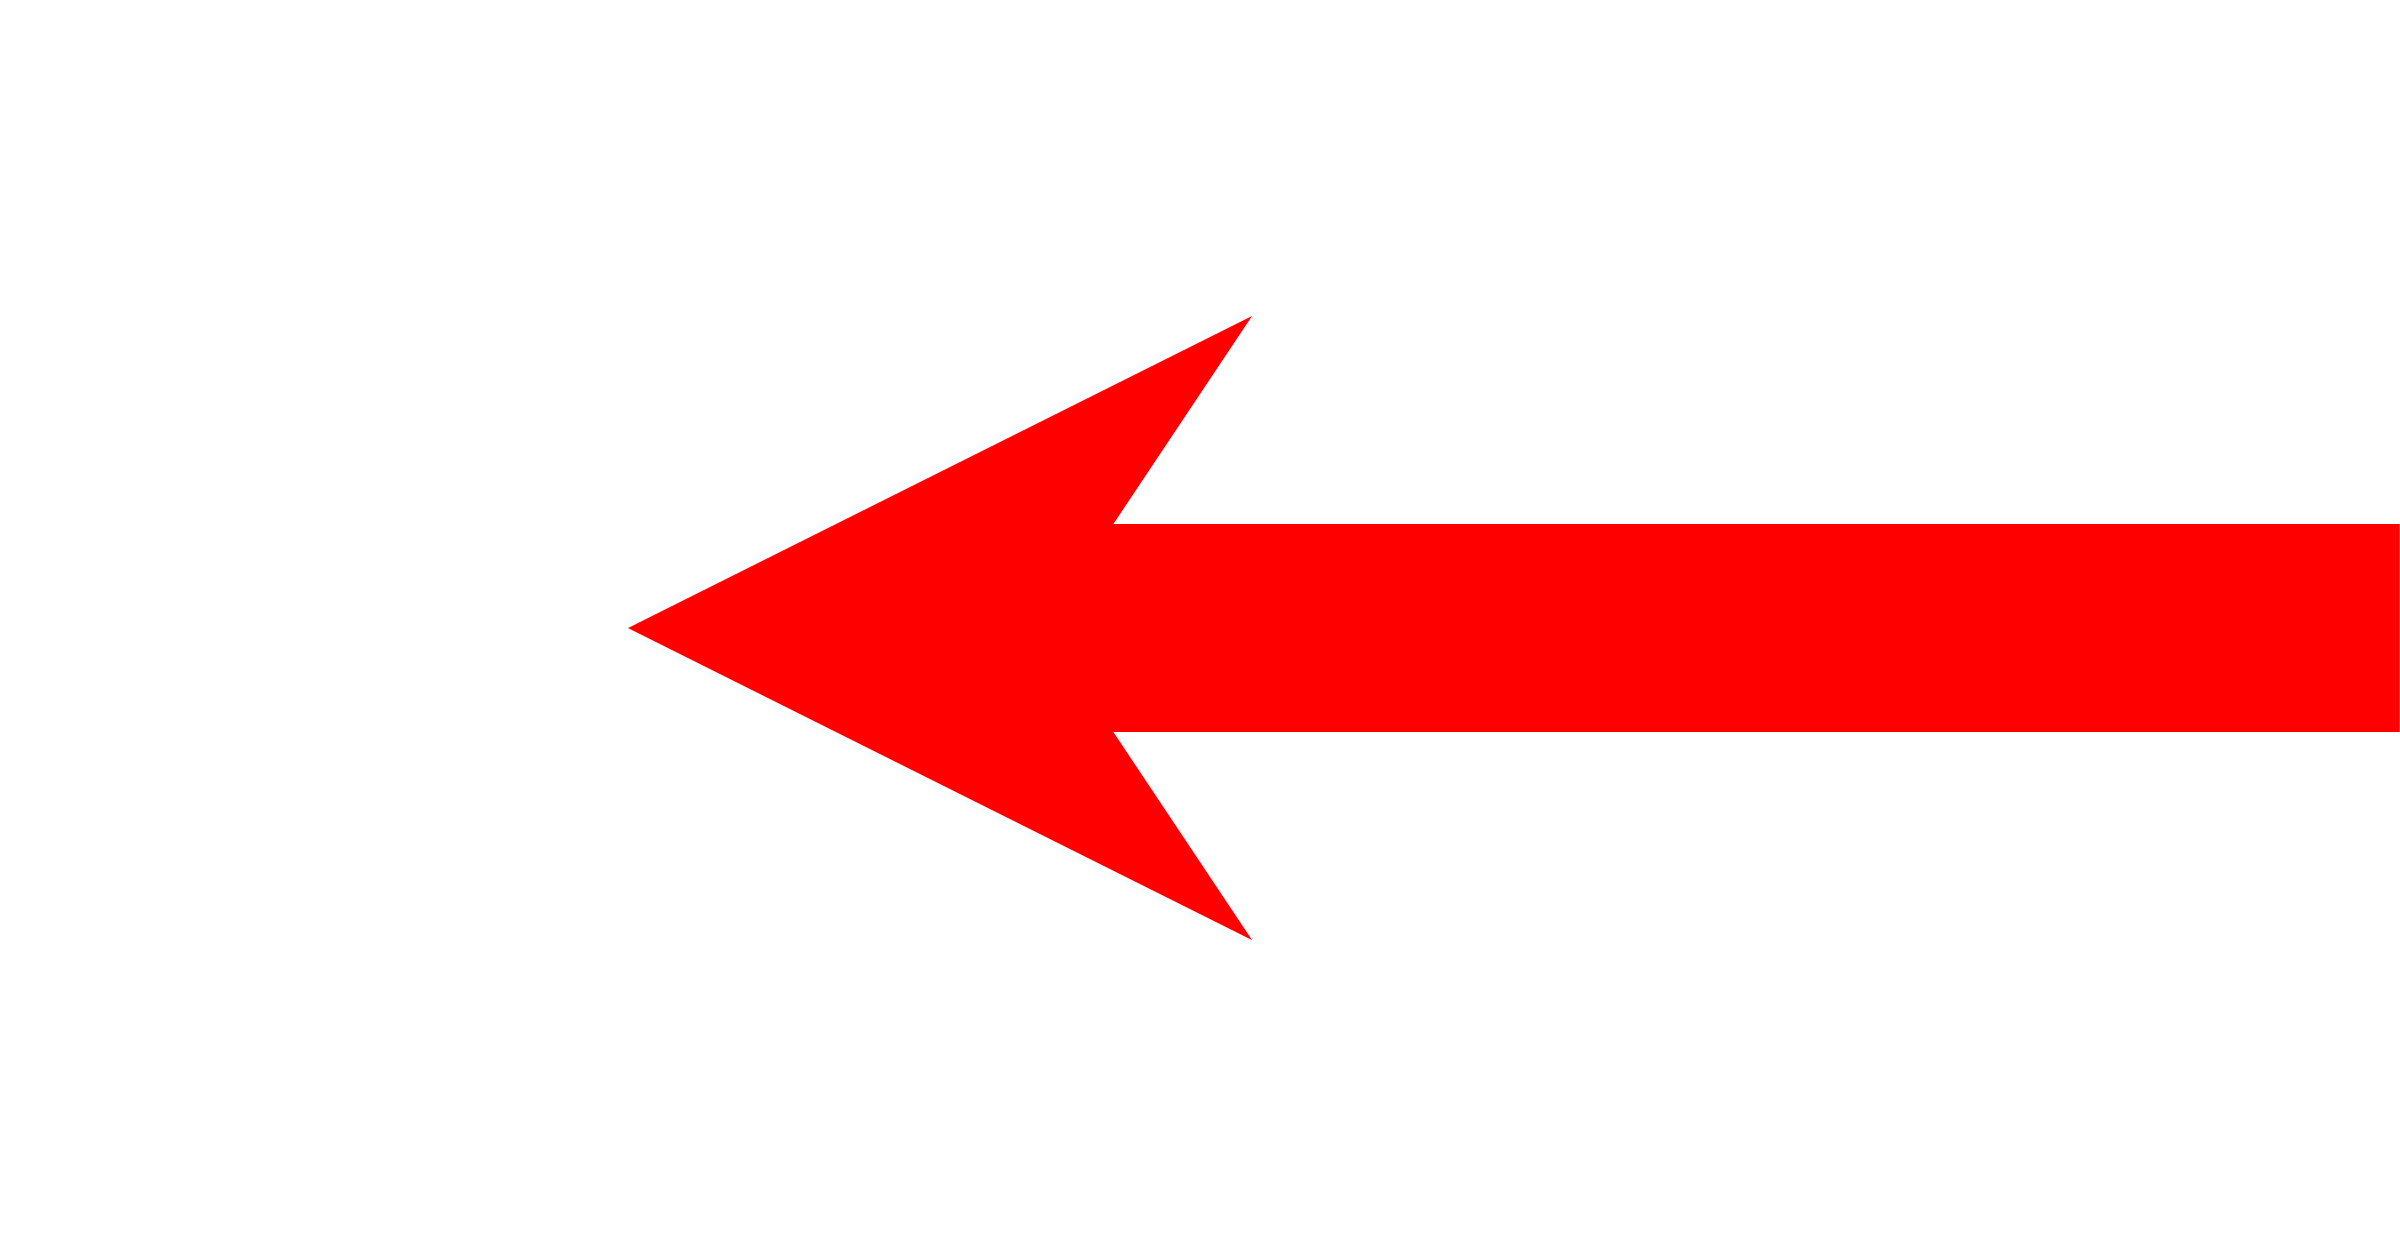 File:Short Left Arrow - Red.png - PNG Red Arrow